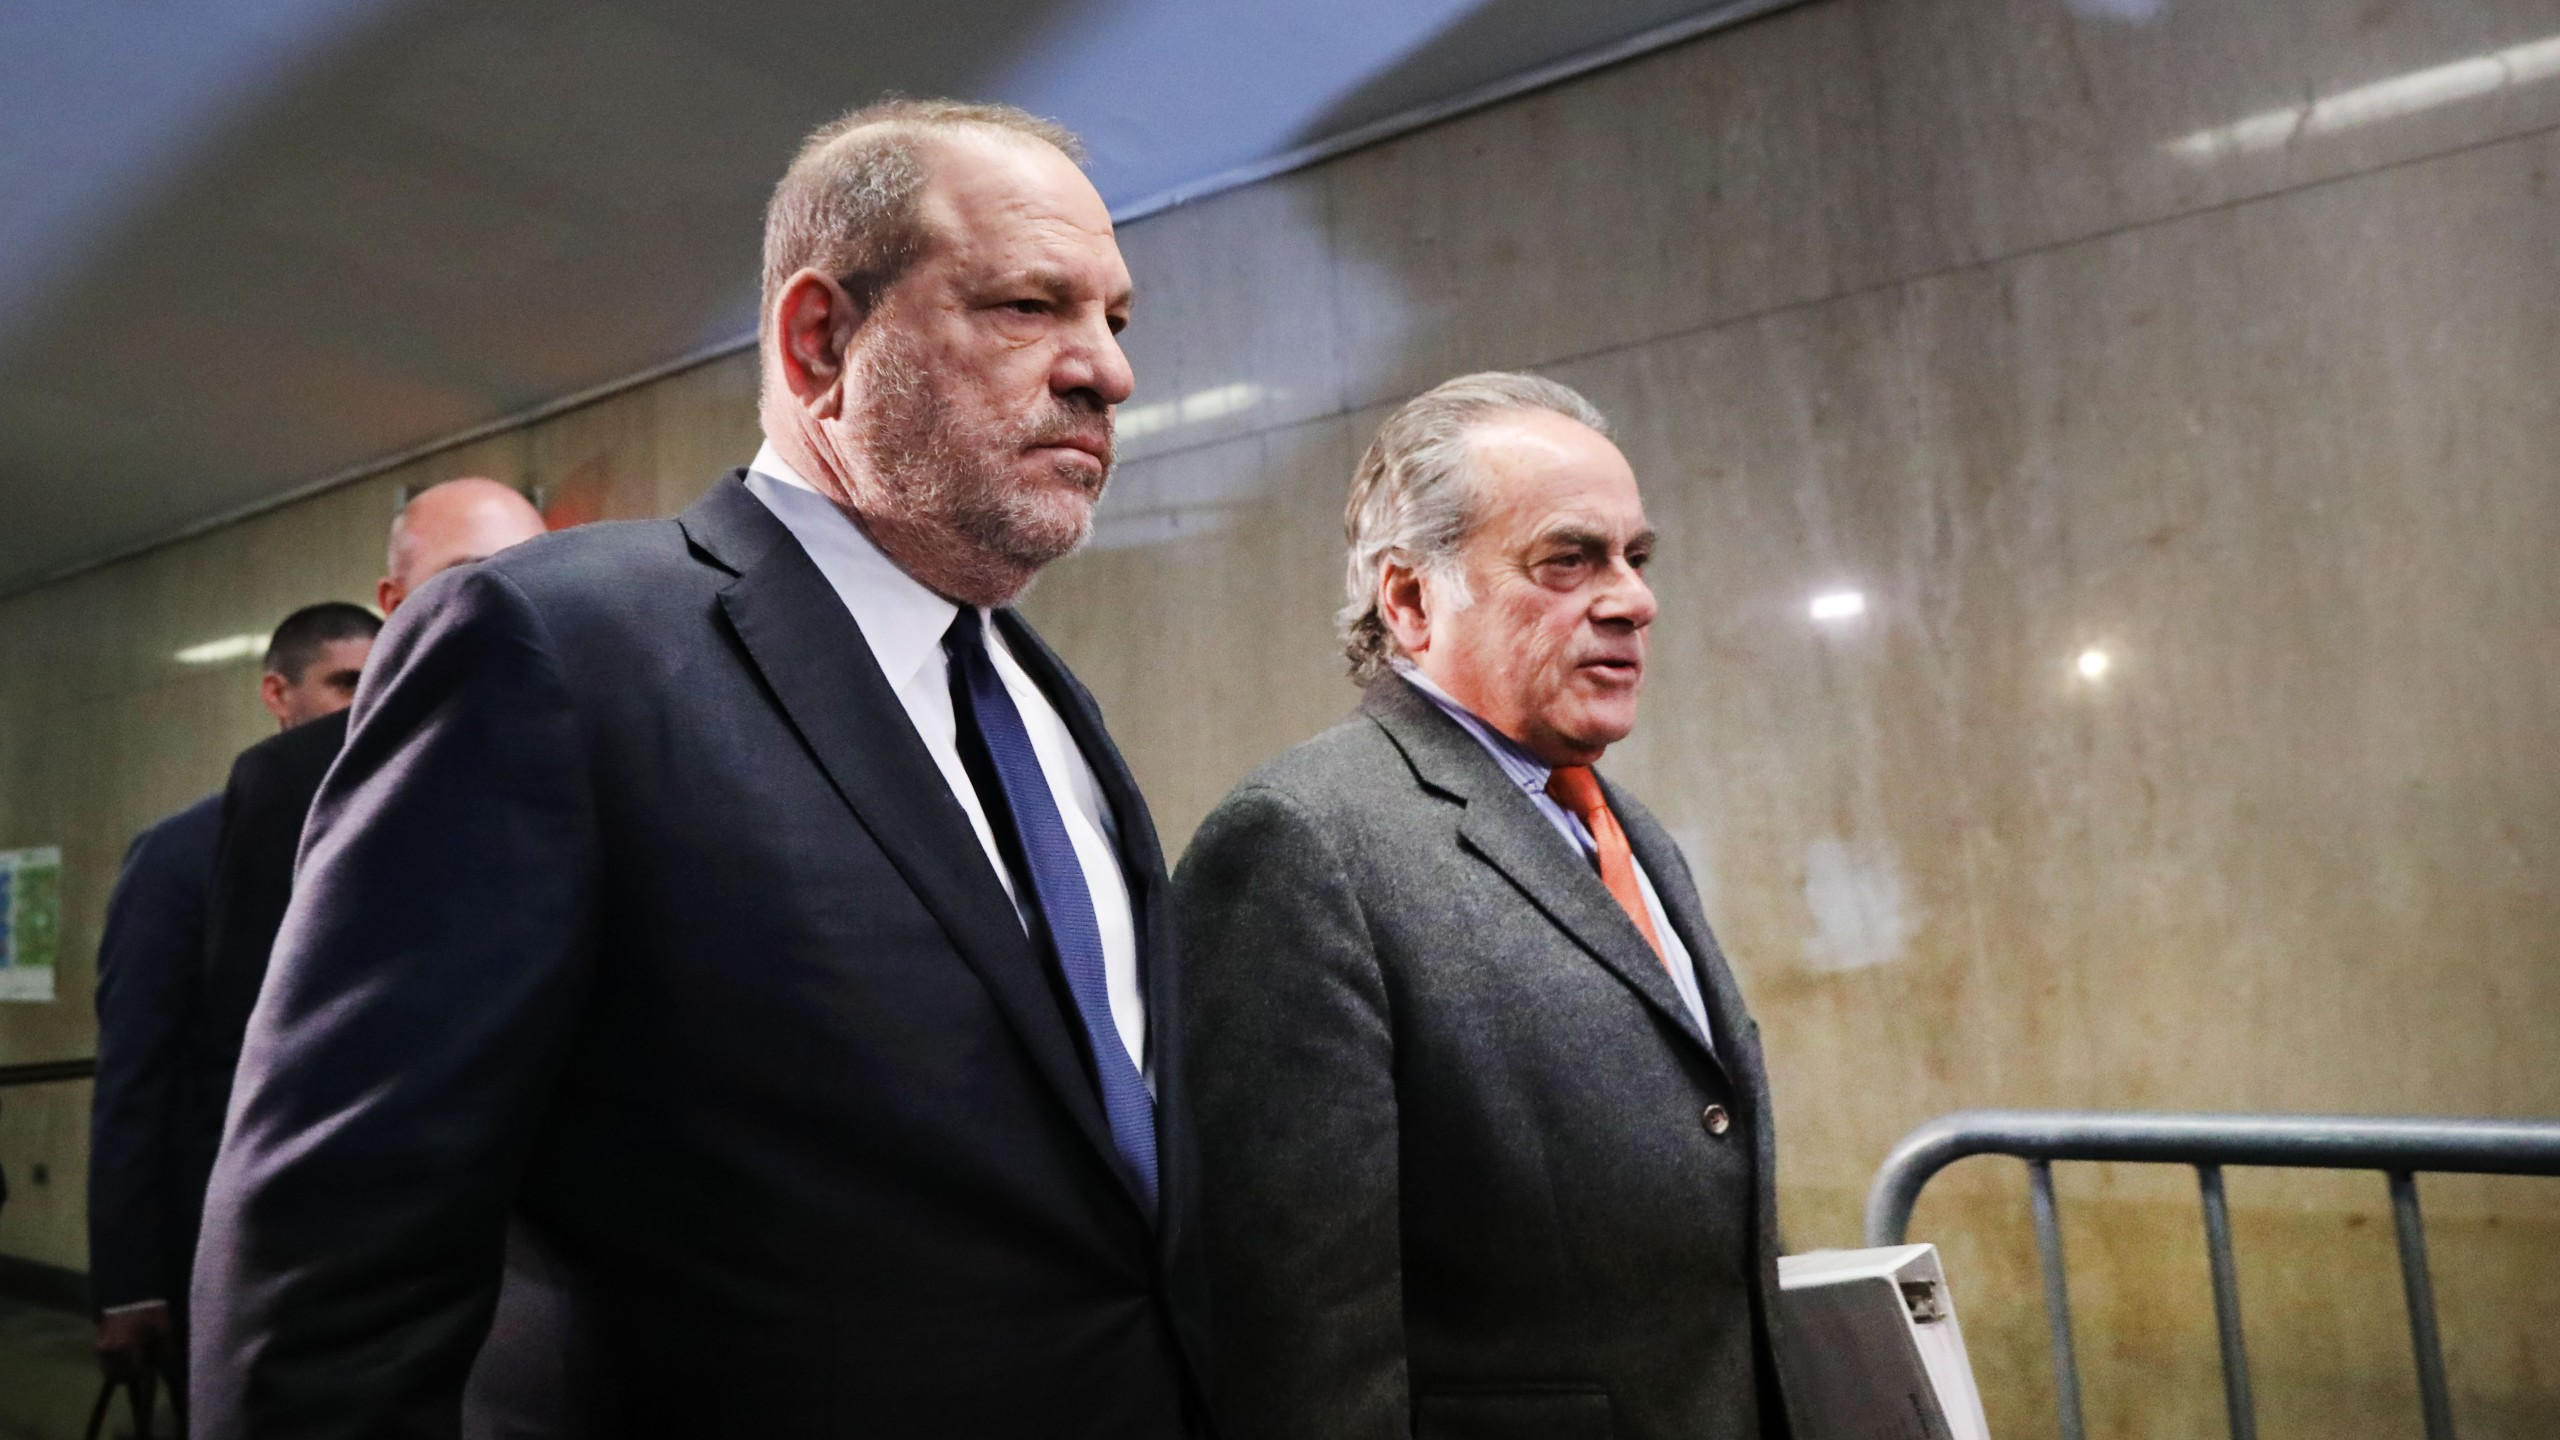 Harvey Weinstein (L) arrives with his lawyer Benjamin Brafman for a court hearing at New York Criminal Court,on December 20, 2018 in New York City. (Credit: Spencer Platt/Getty Images)